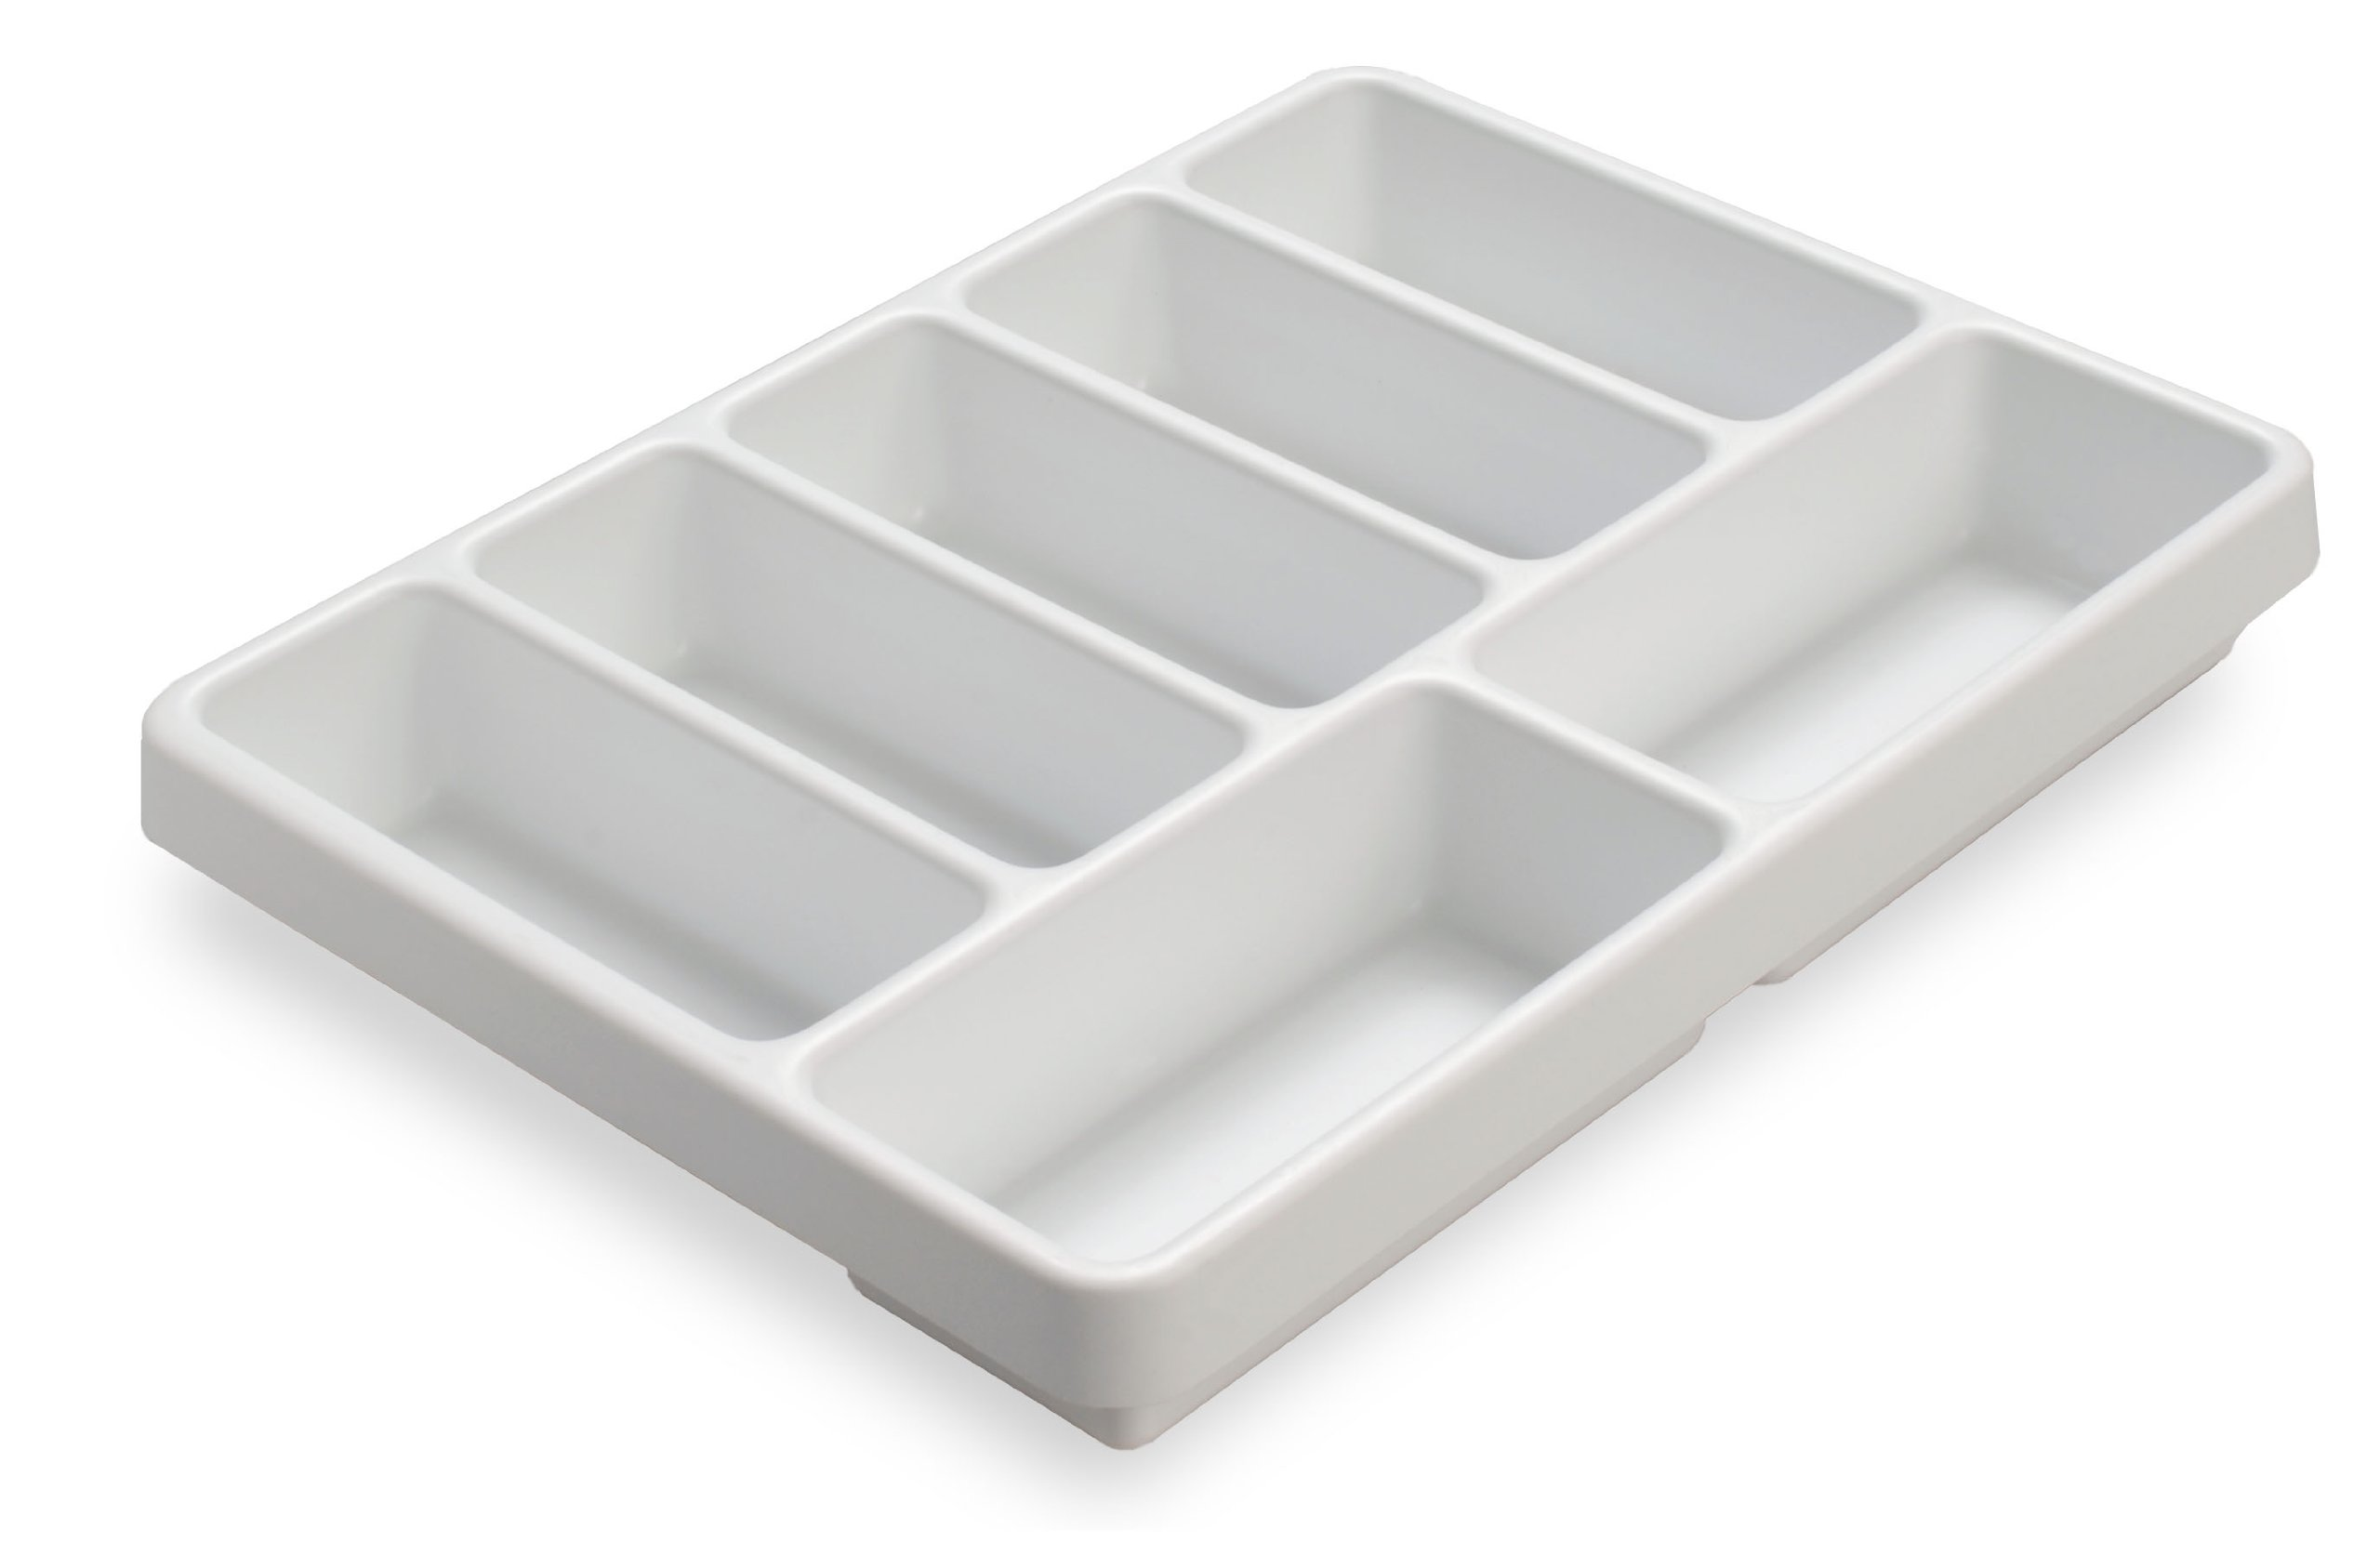 TrippNT 50032 White Polystyrene Plastic Drawer Organizer, 7 Compartments, 16.8'' Width x 2.4'' Height x 12.9'' Depth